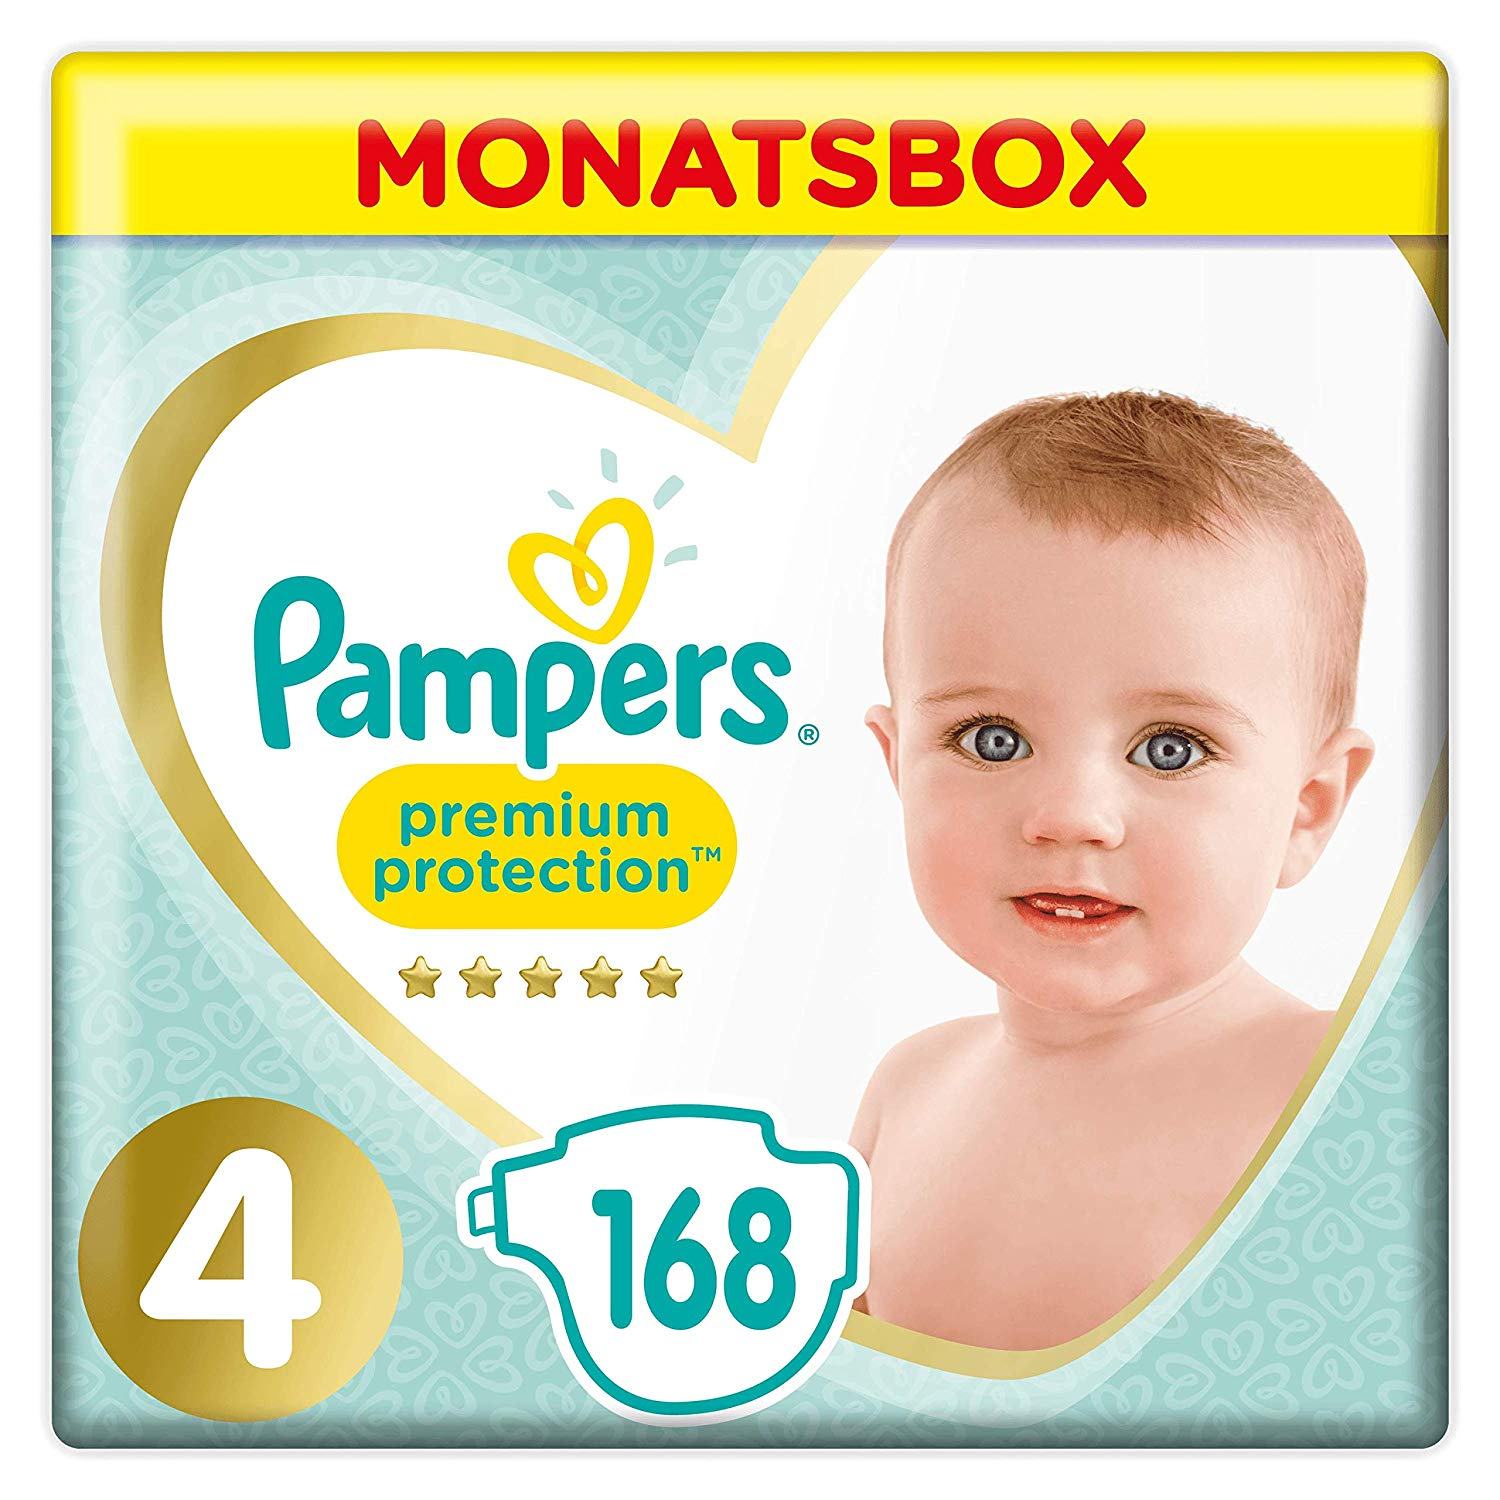 Pampers Windeln Monatsbox amazon